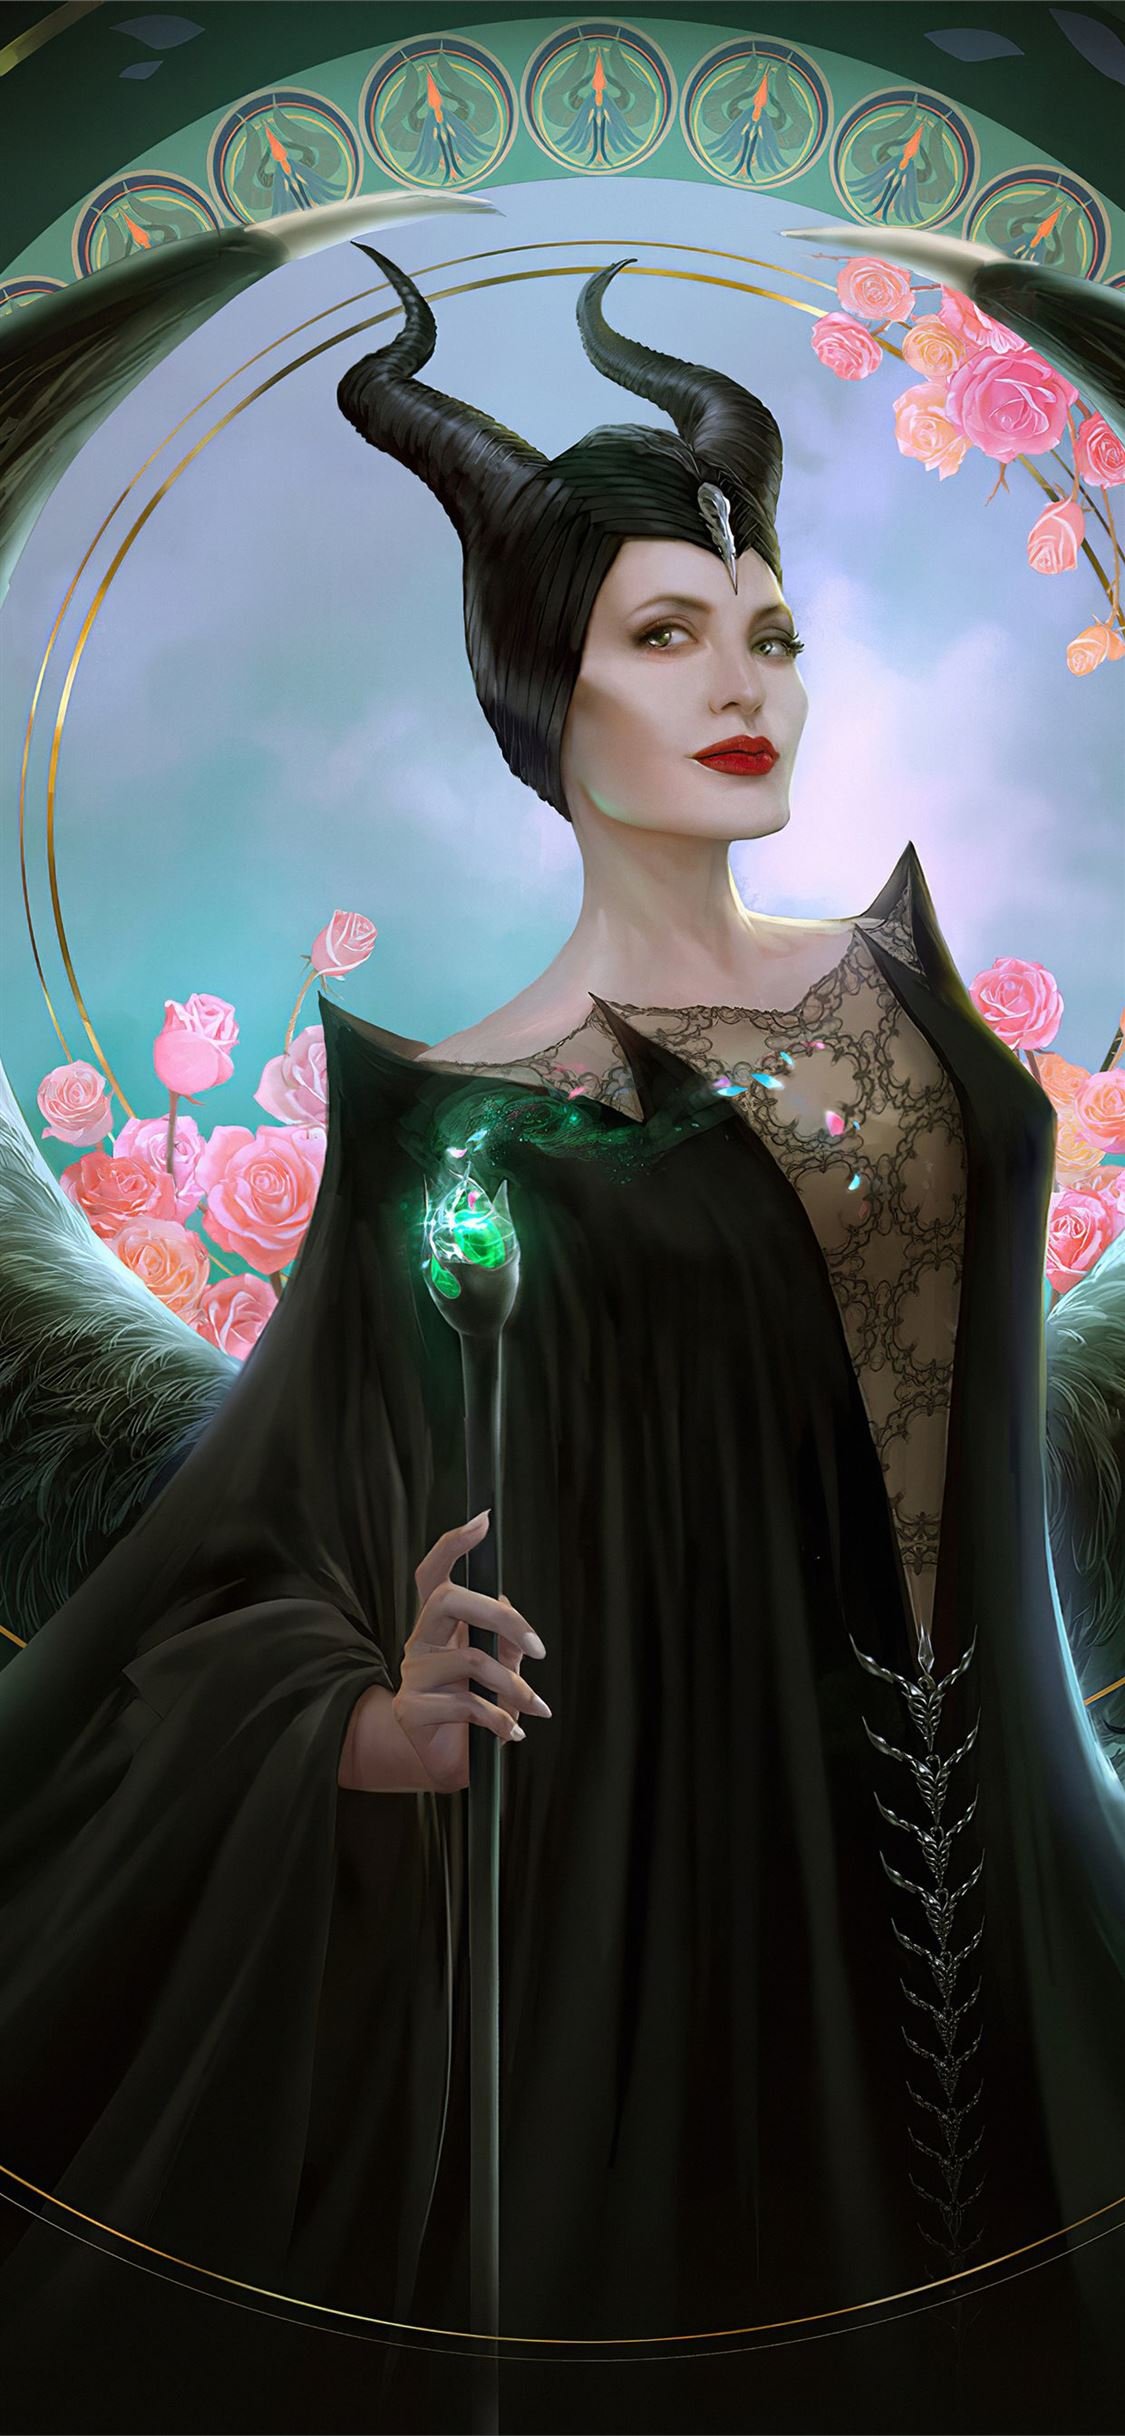 Download Maleficent Wallpaper Iphone Background